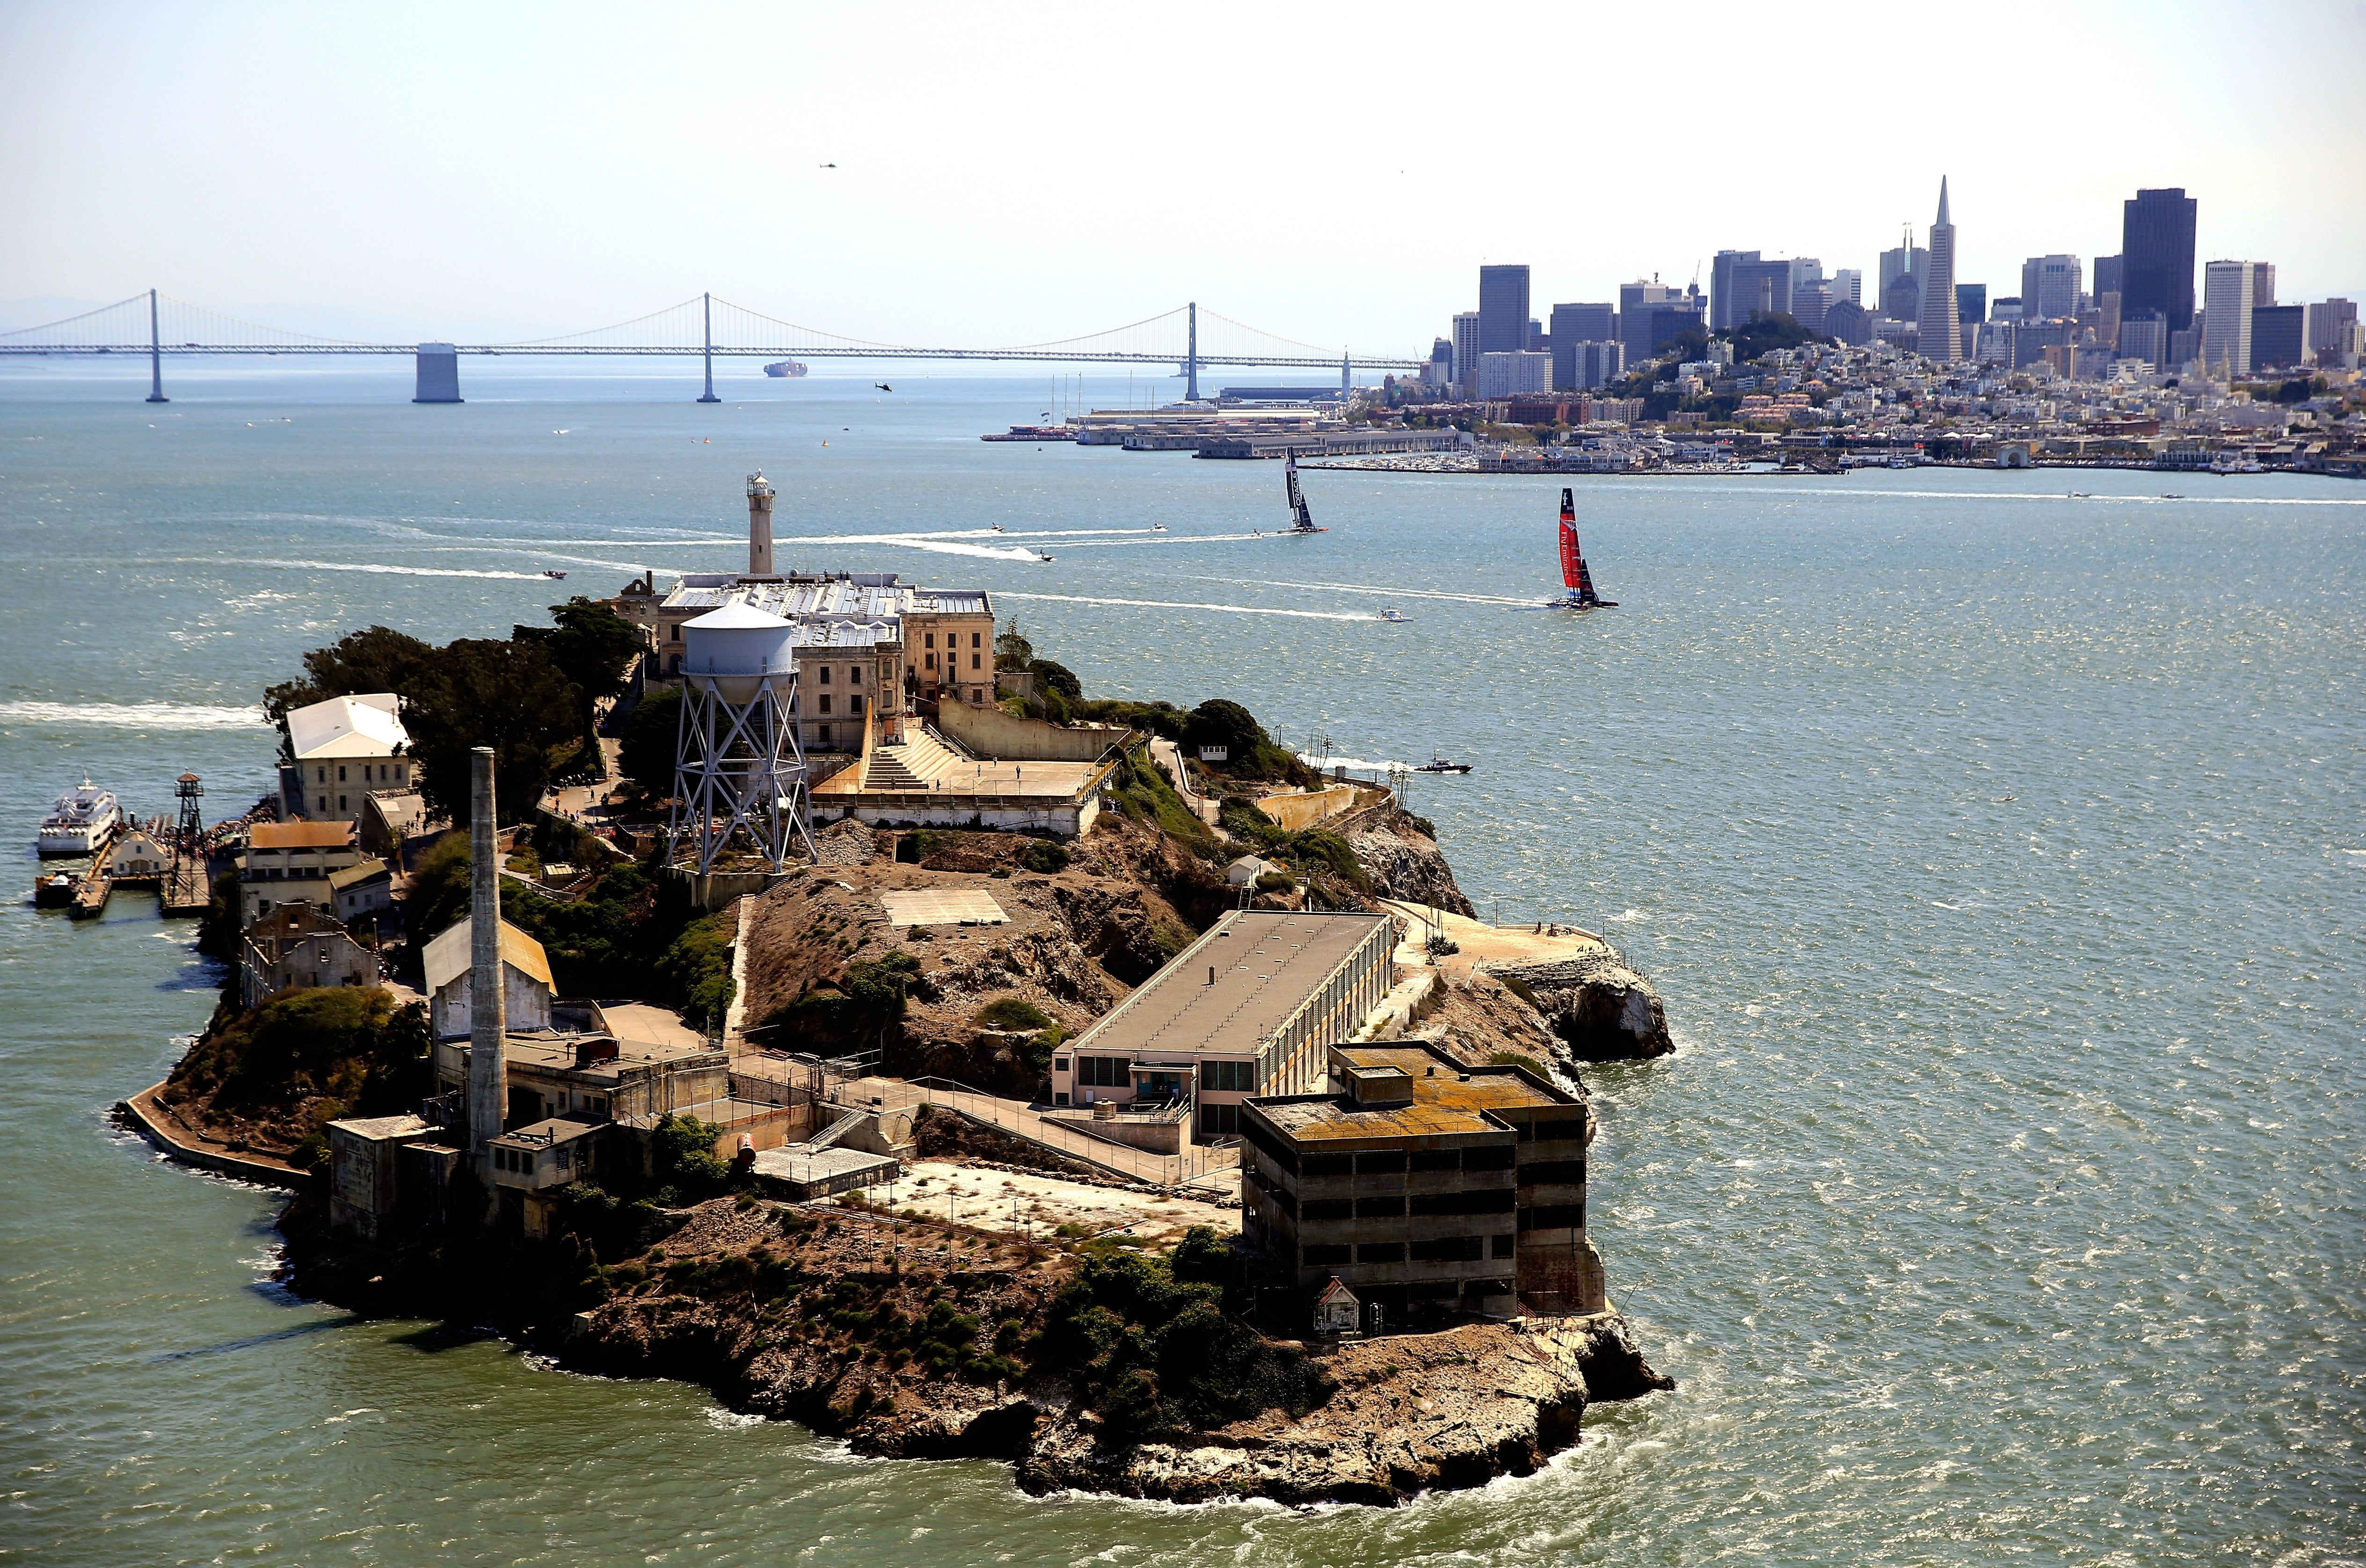 Alcatraz Island housed a federal penitentiary from 1934 to 1963.